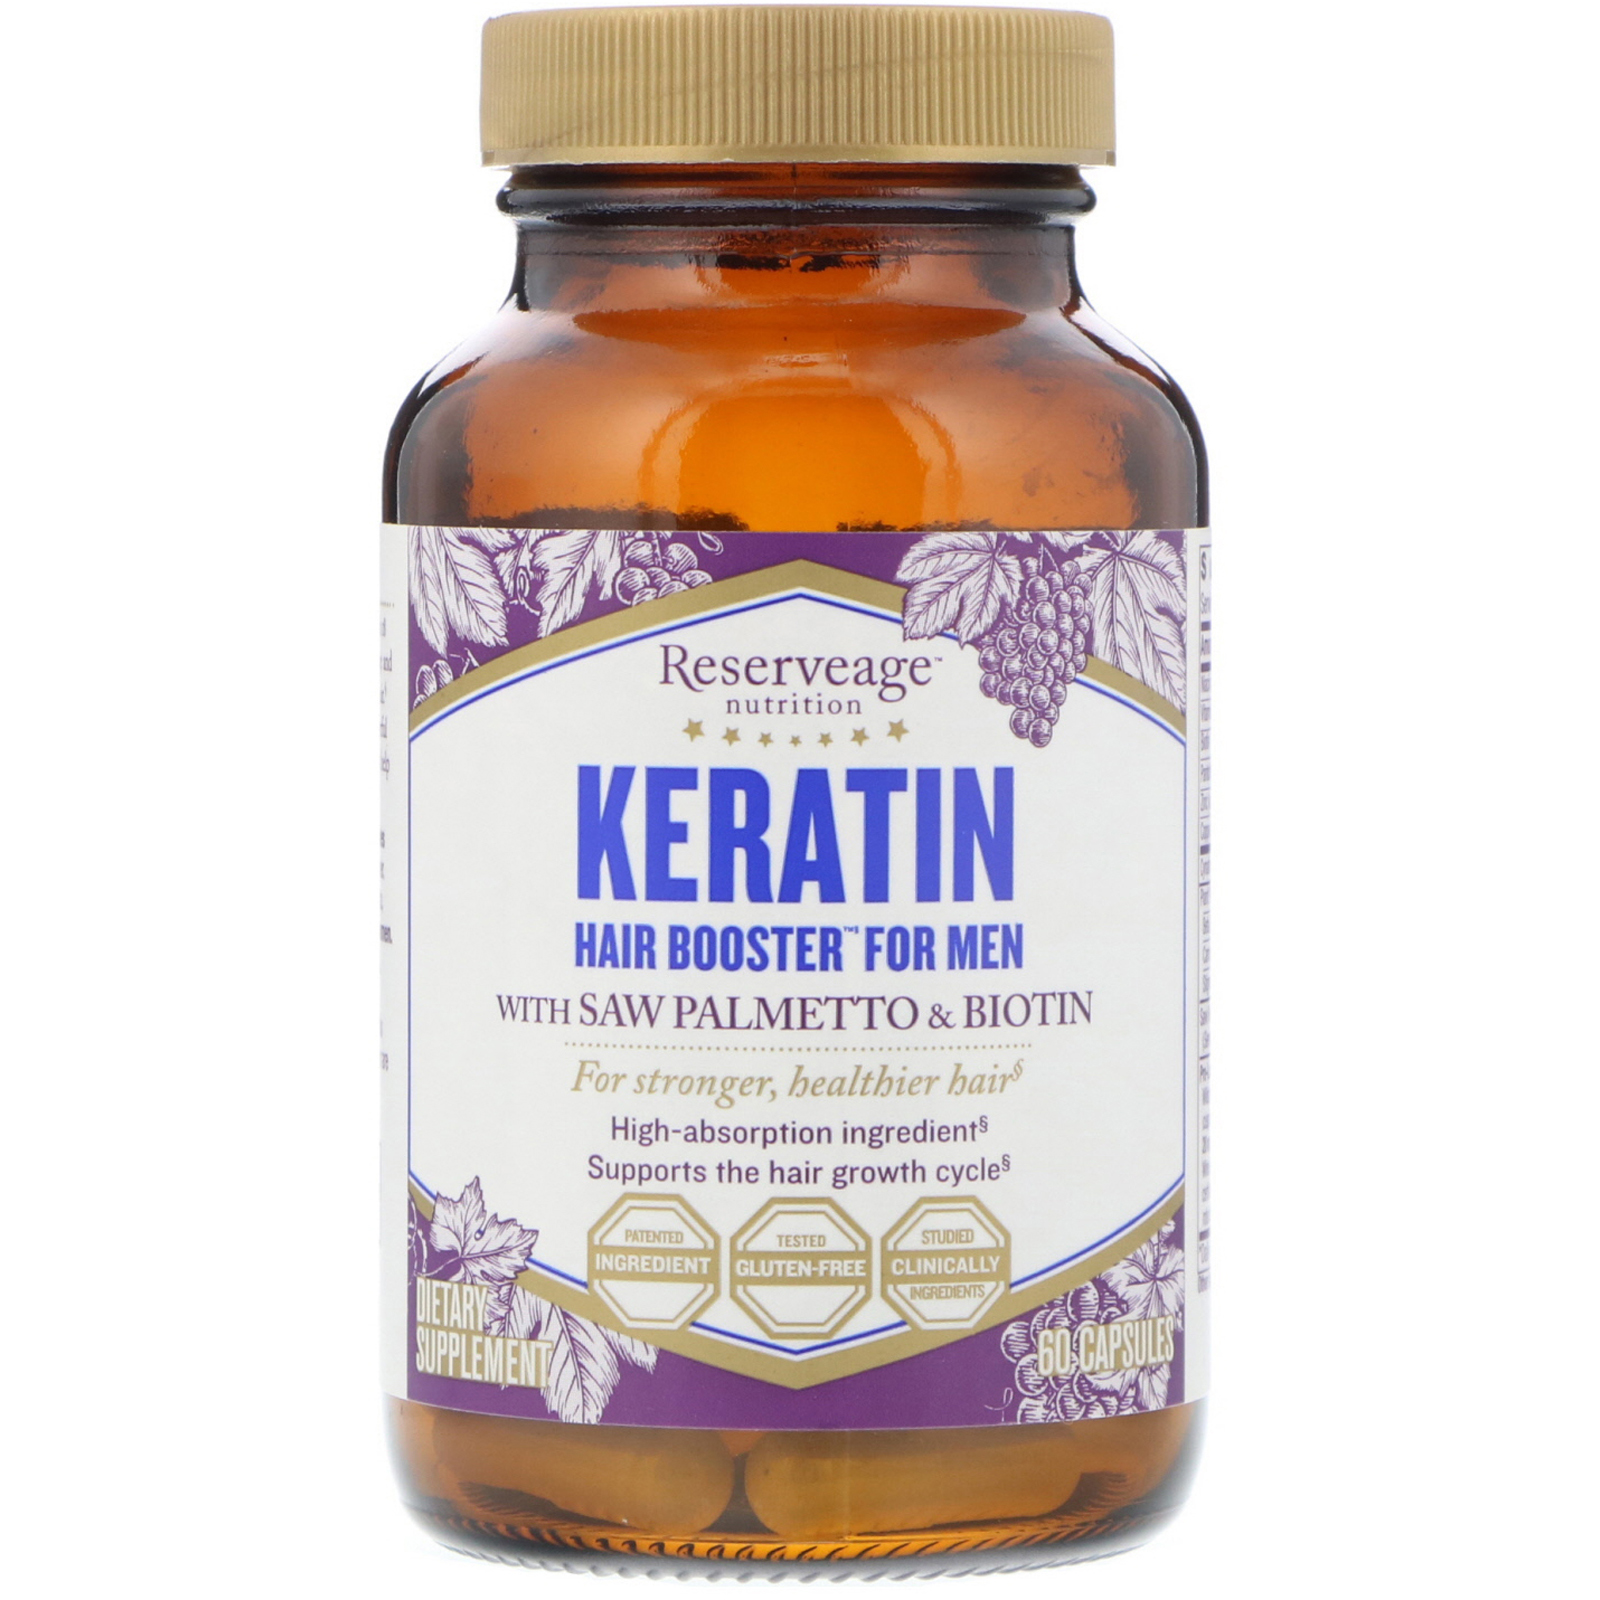 Reserveage Nutrition Keratin Hair Booster For Men 60 Capsules